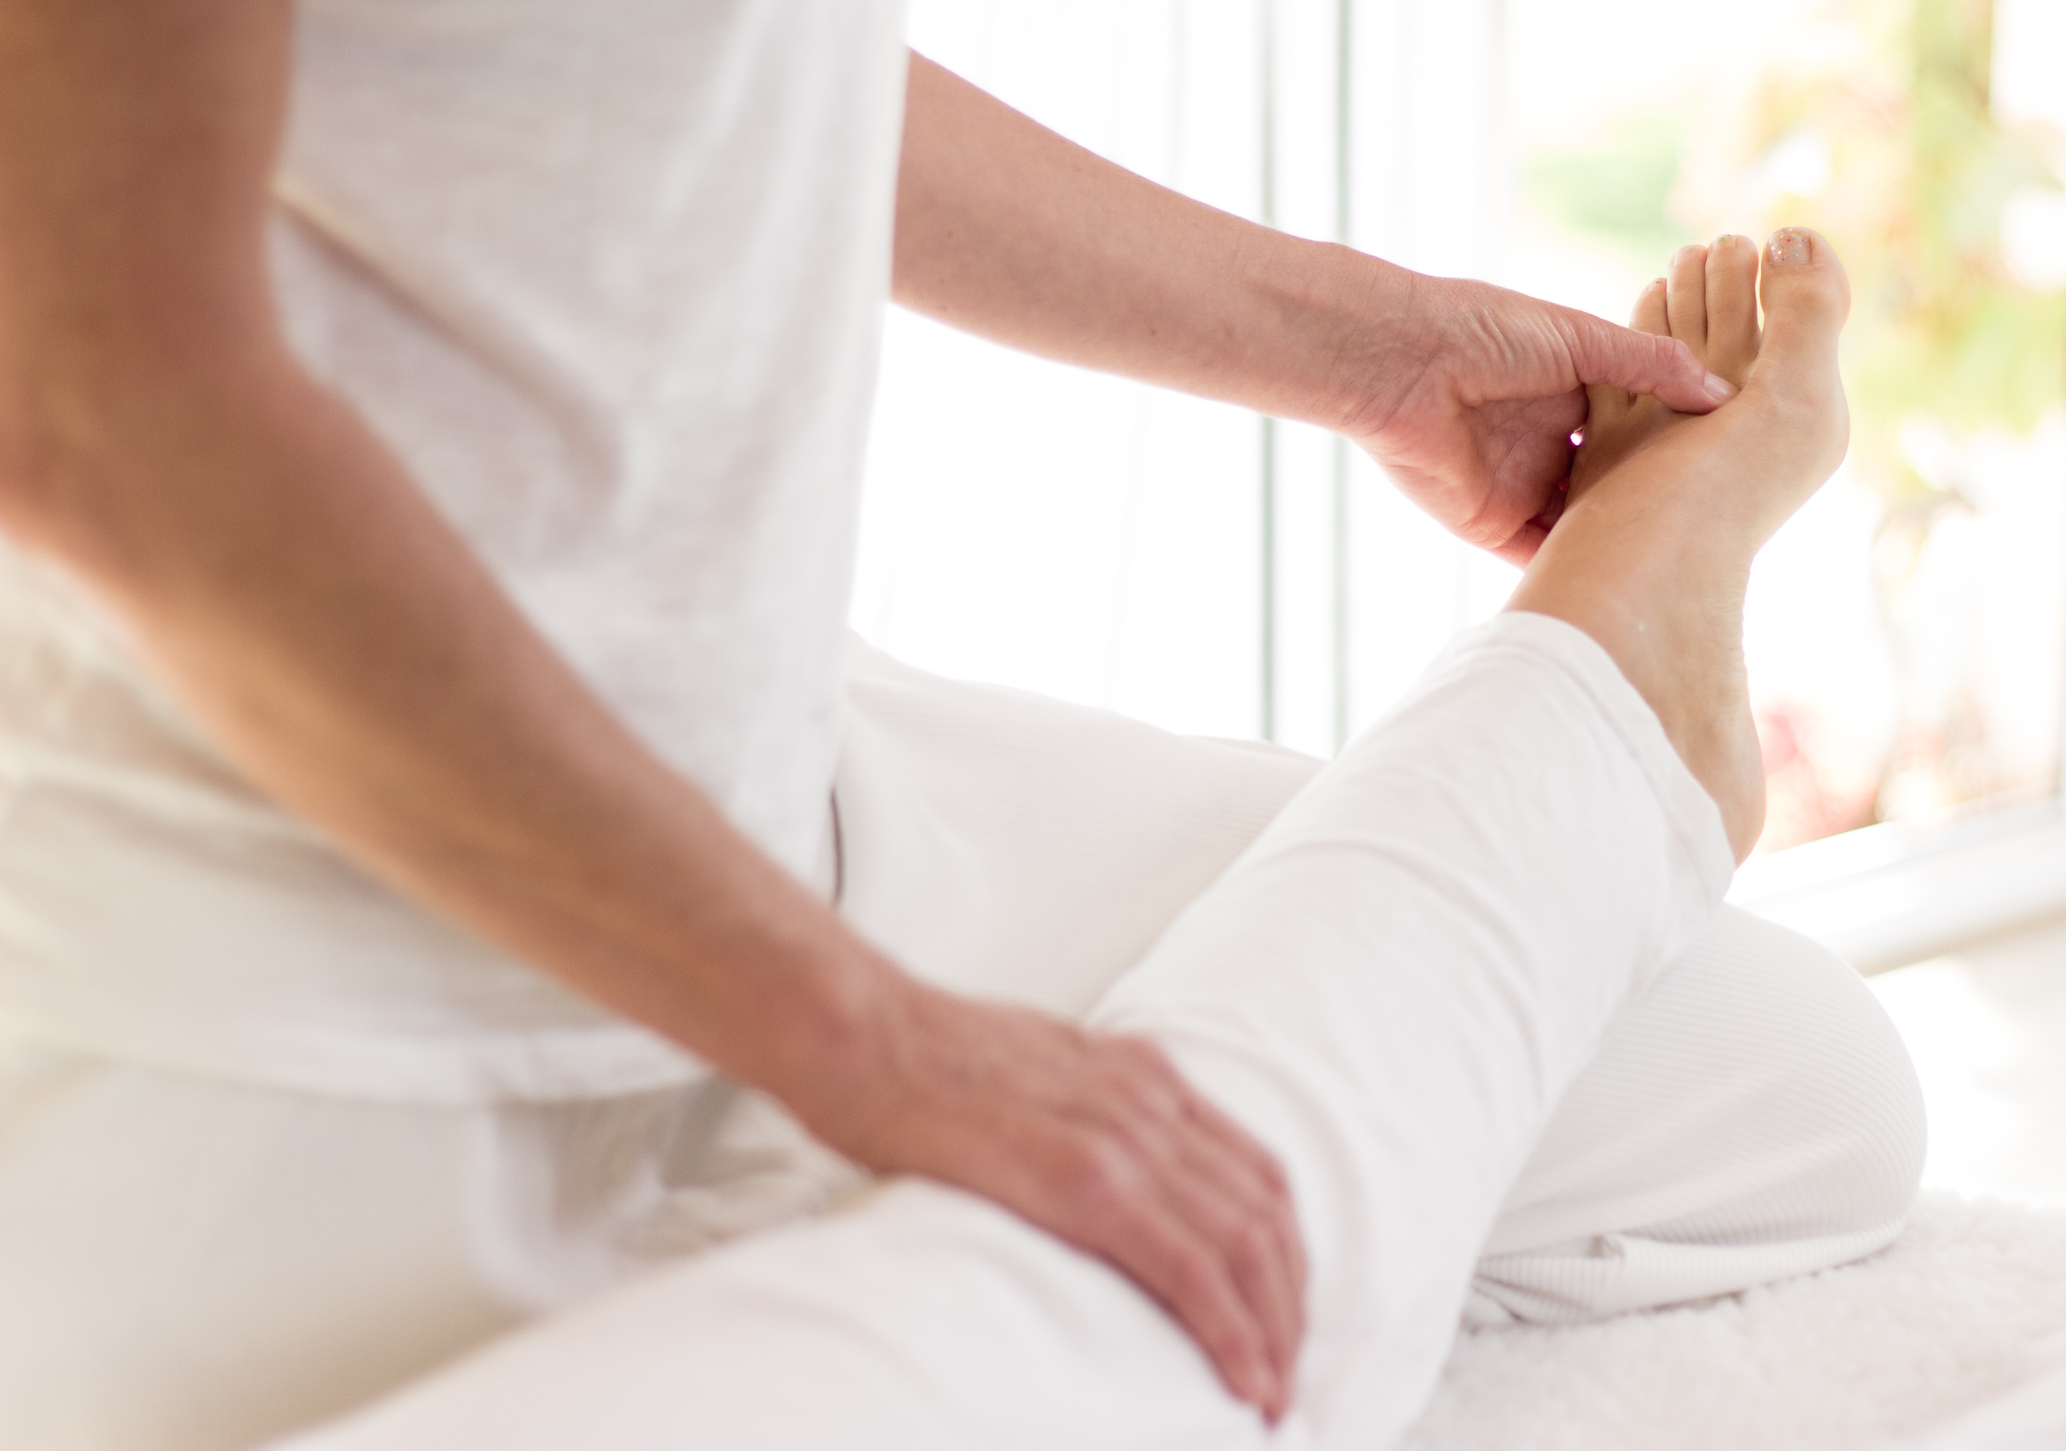 Thai Massage   Gentle, rhythmic rocking, pressure and stretching balances the flow of Qi energy throughout the body, improving flexibility and relieving muscle tension. This therapy uses no oil and is performed fully clothed on a spa table or floor mat.   60 mins $95    75 mins $120    90 mins $140